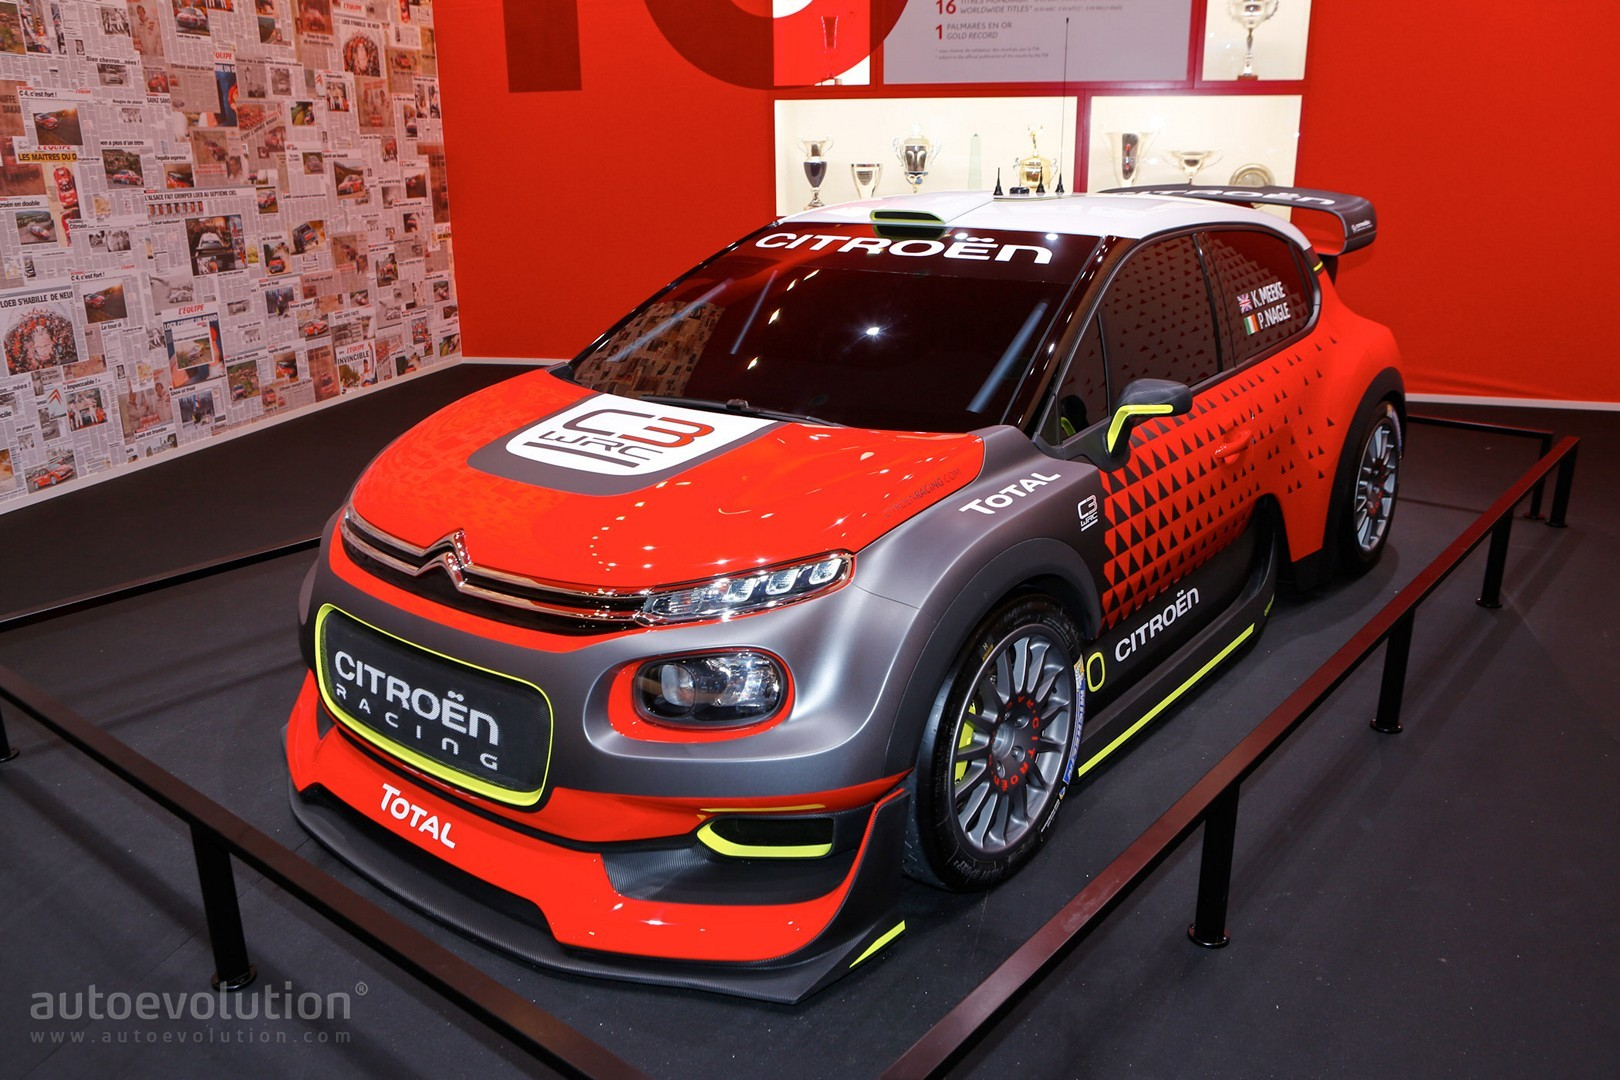 citroen 39 s c3 wrc is the most beautiful rally car in paris autoevolution. Black Bedroom Furniture Sets. Home Design Ideas